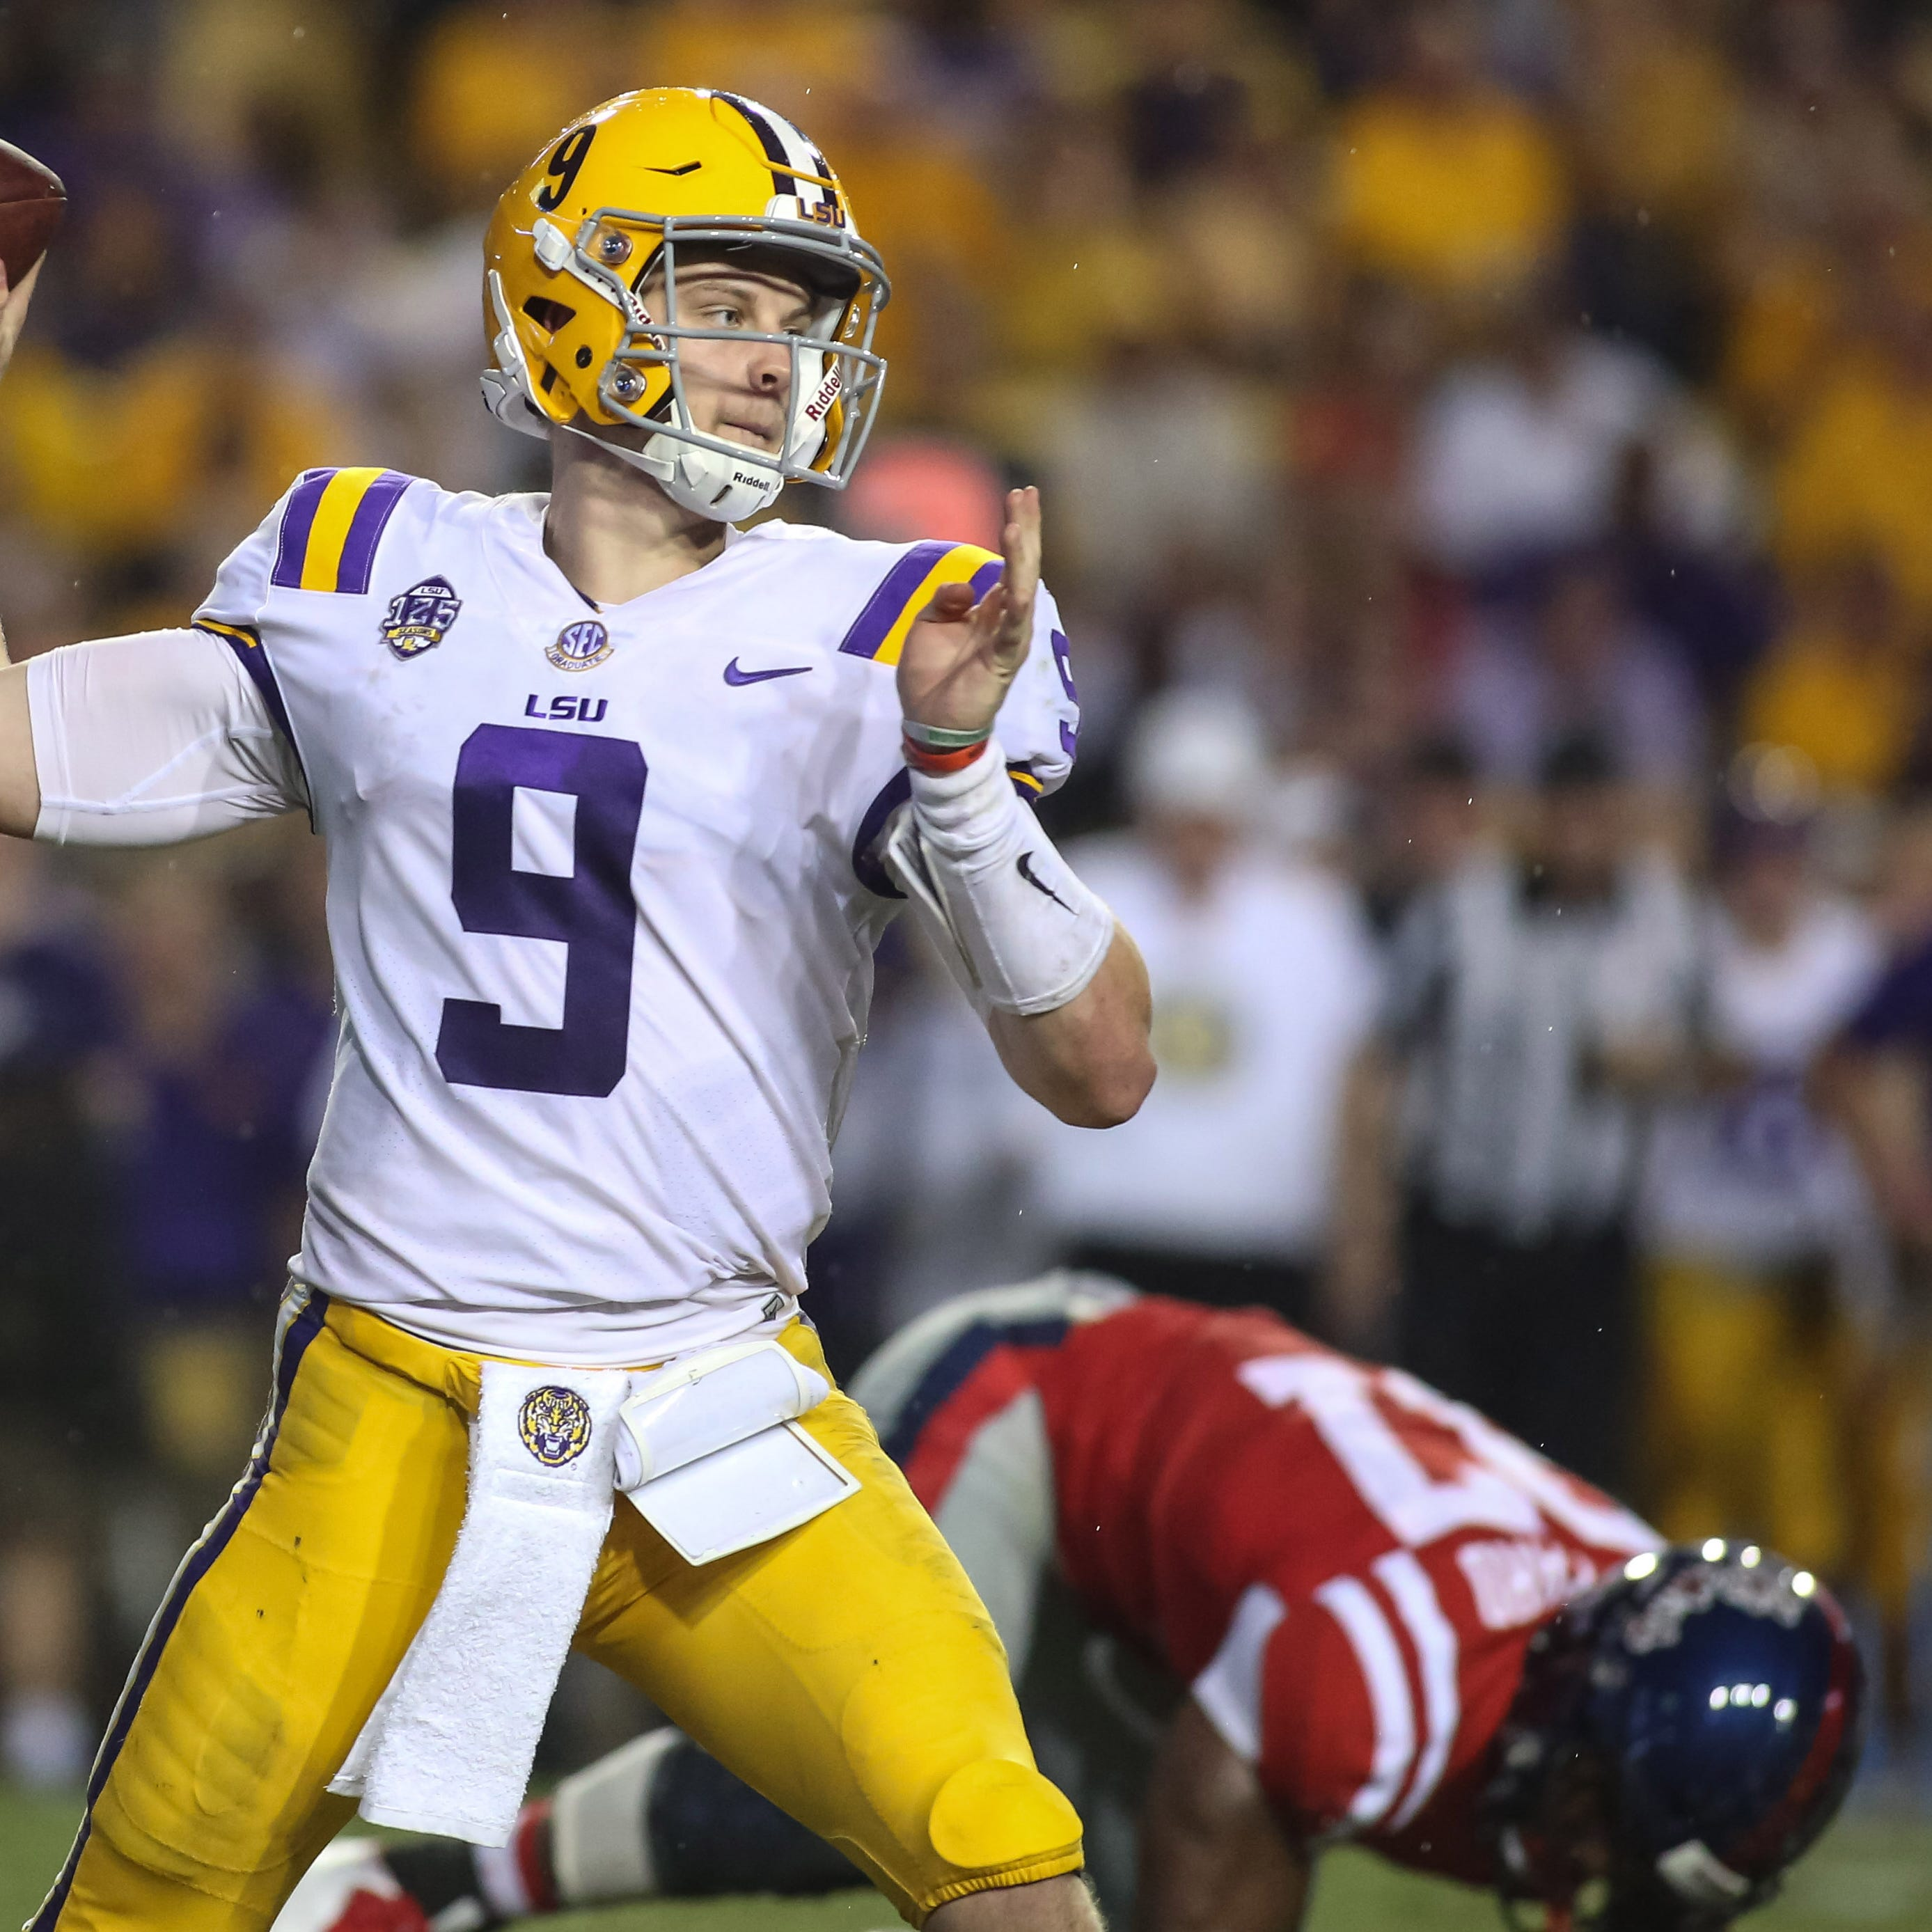 Why Shoop, Mississippi State view LSU quarterback Joe Burrow as more than a 'game manager'